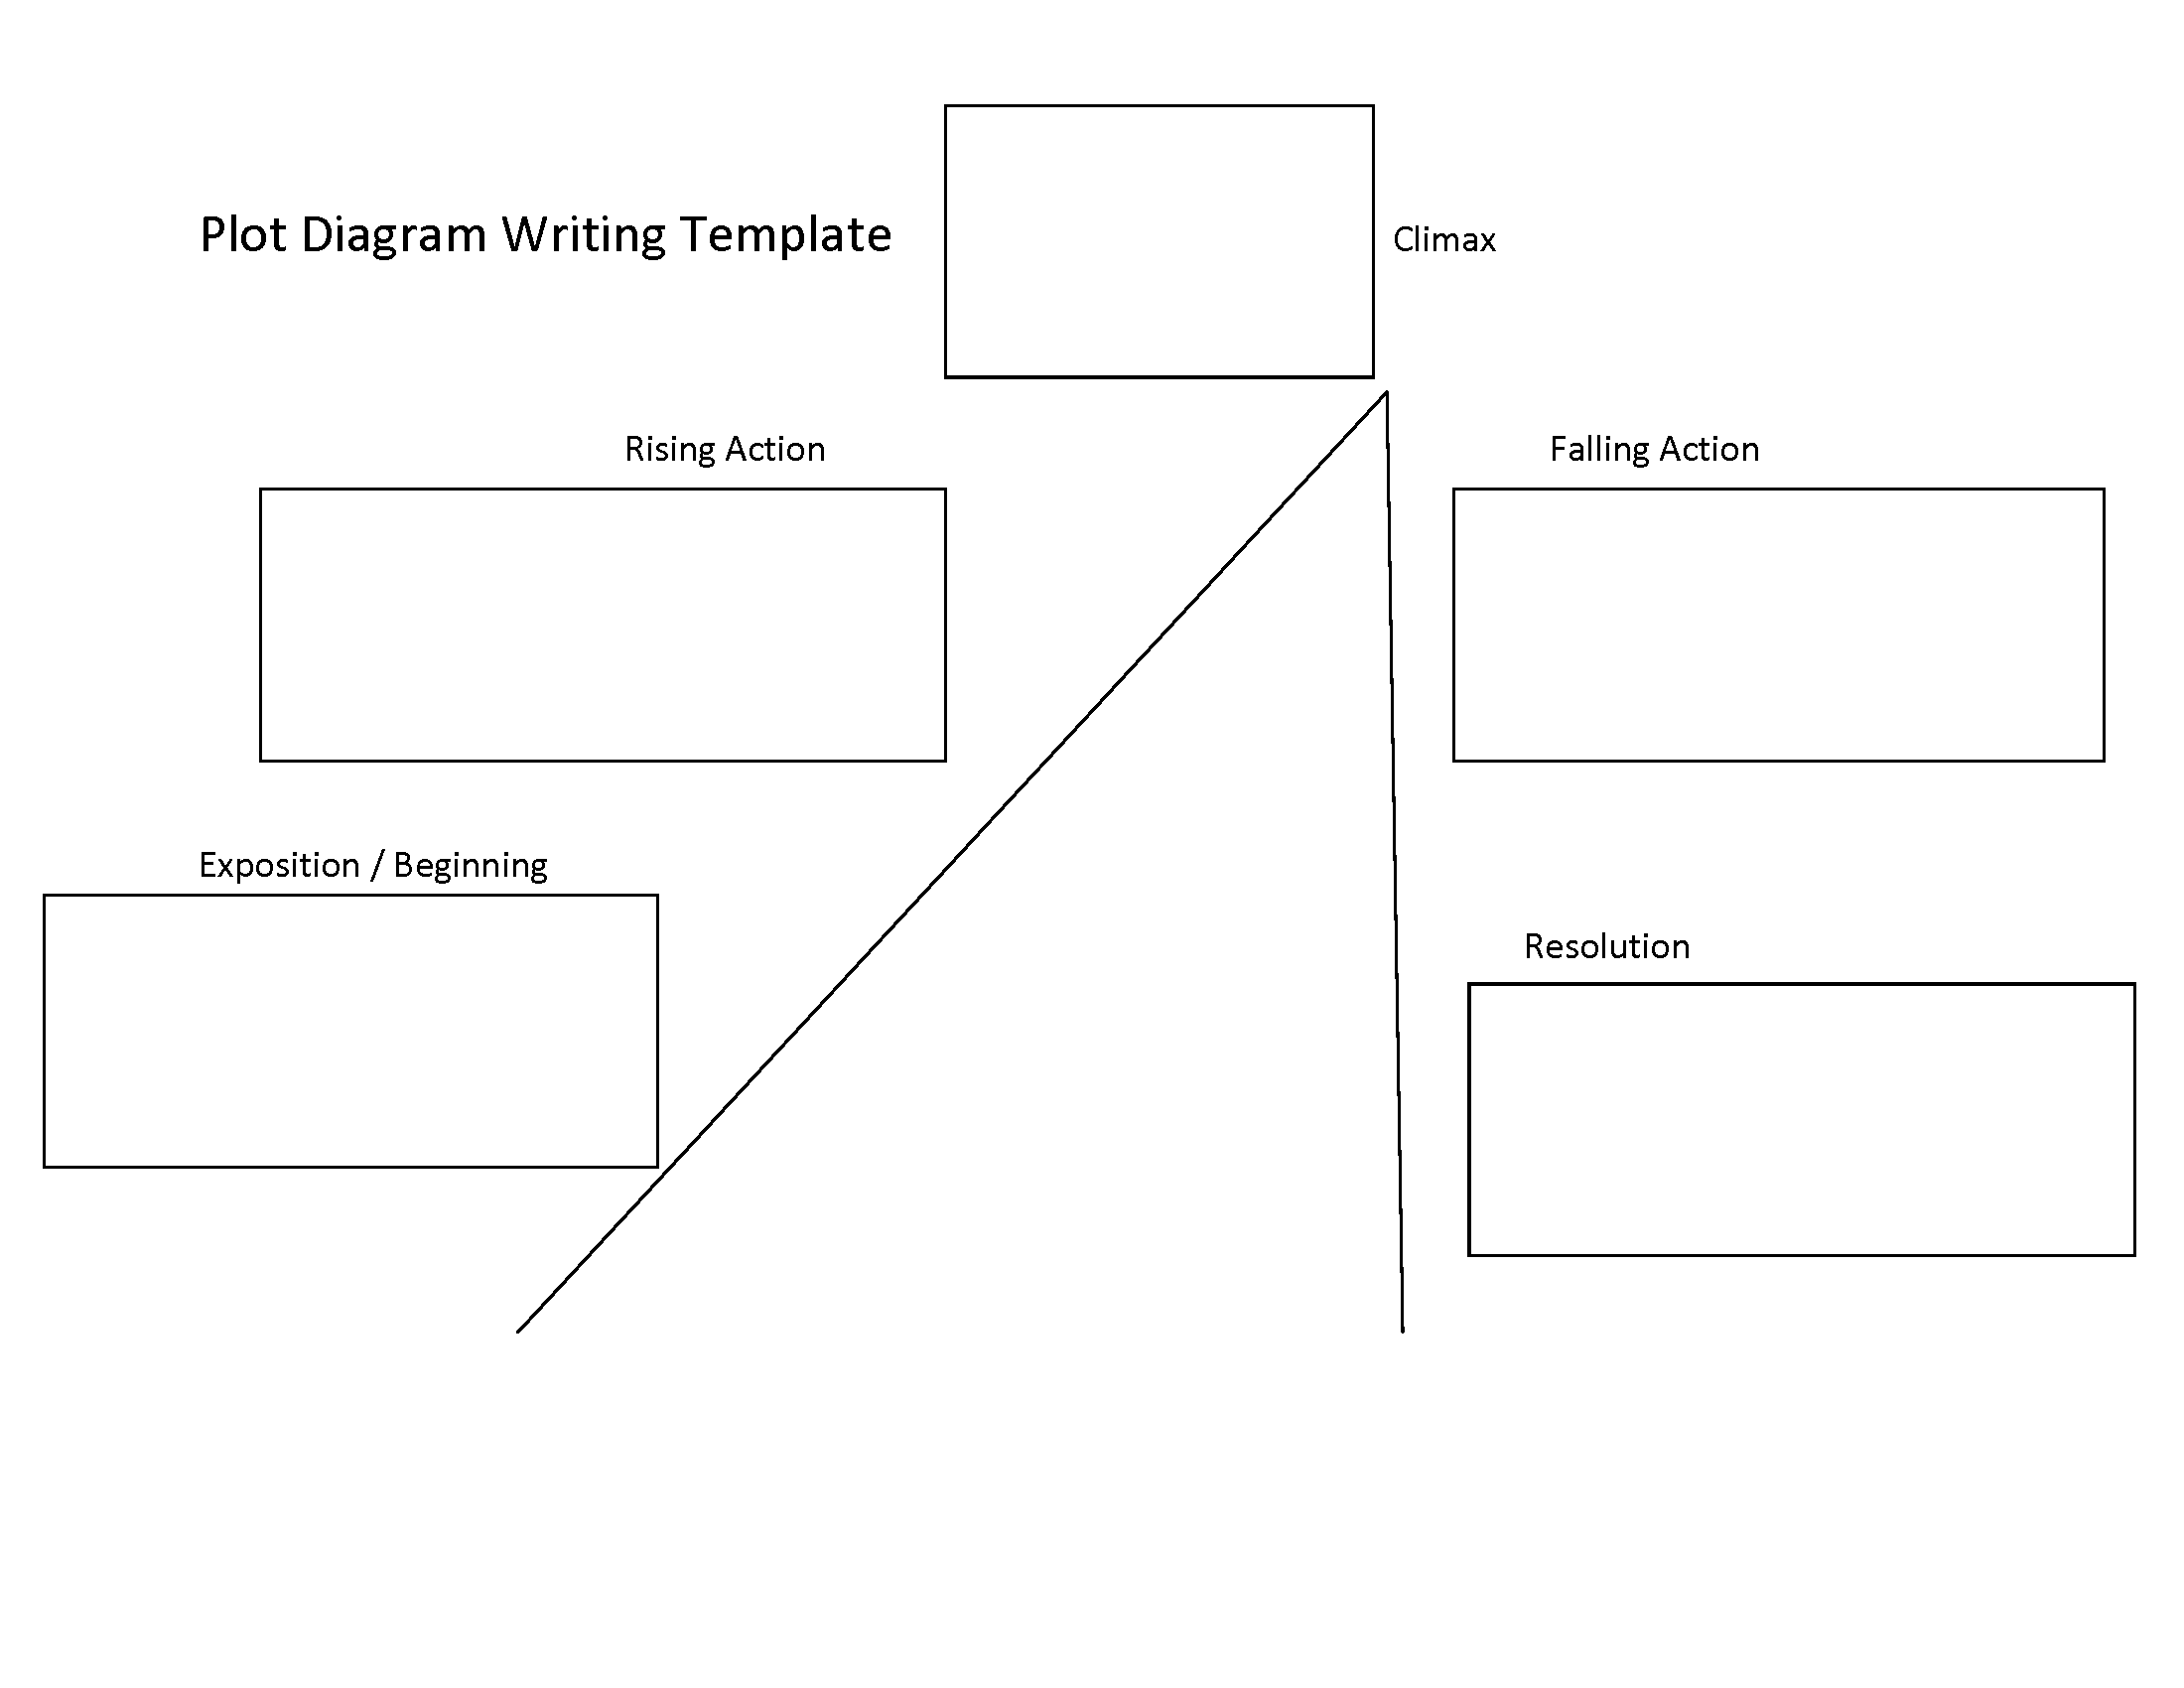 Writing Template Worksheets | Plot Diagram Writing Template Worksheet